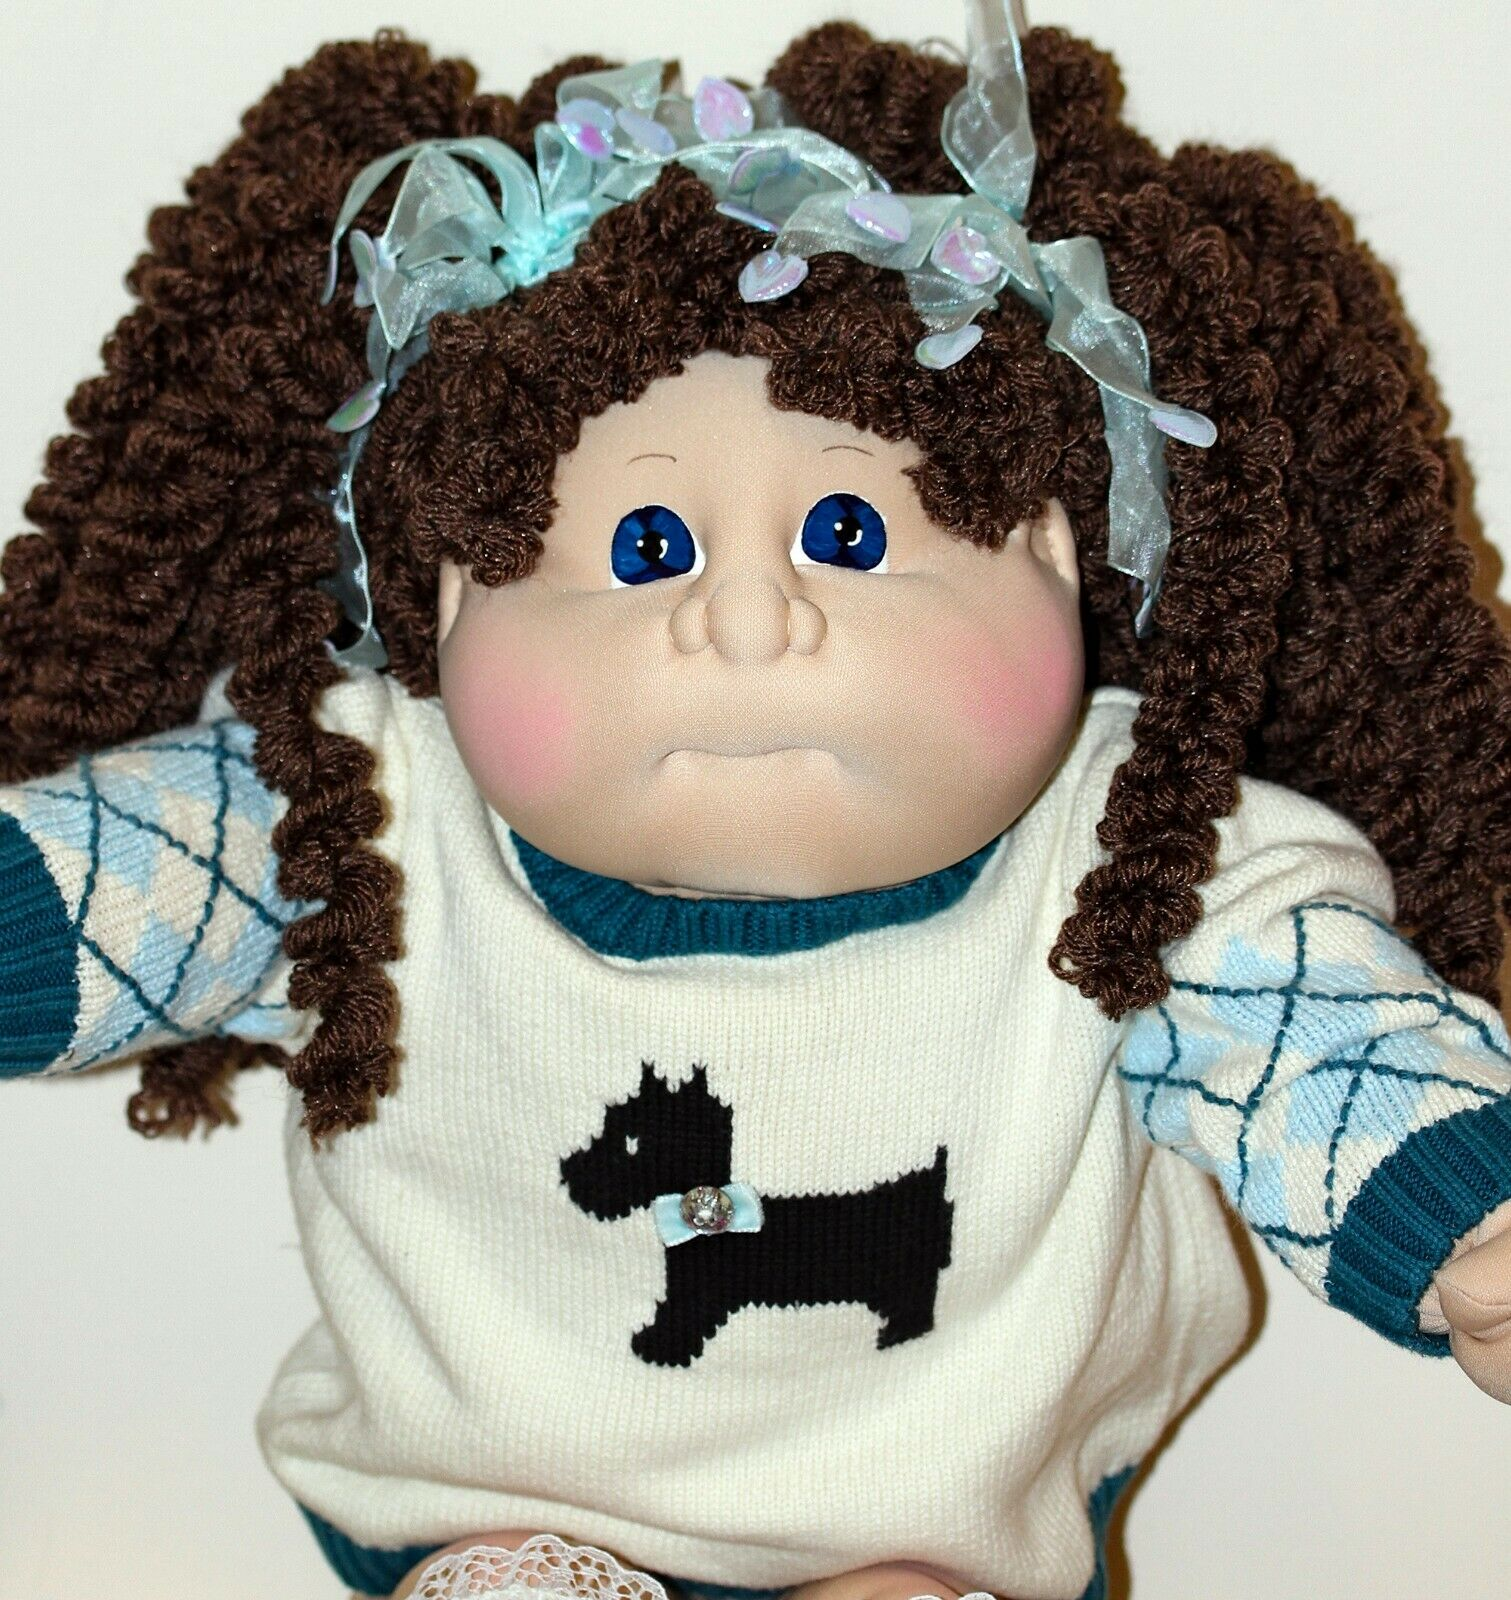 Ebay Cabbage Patch Kids Selling Price | Apartment Therapy